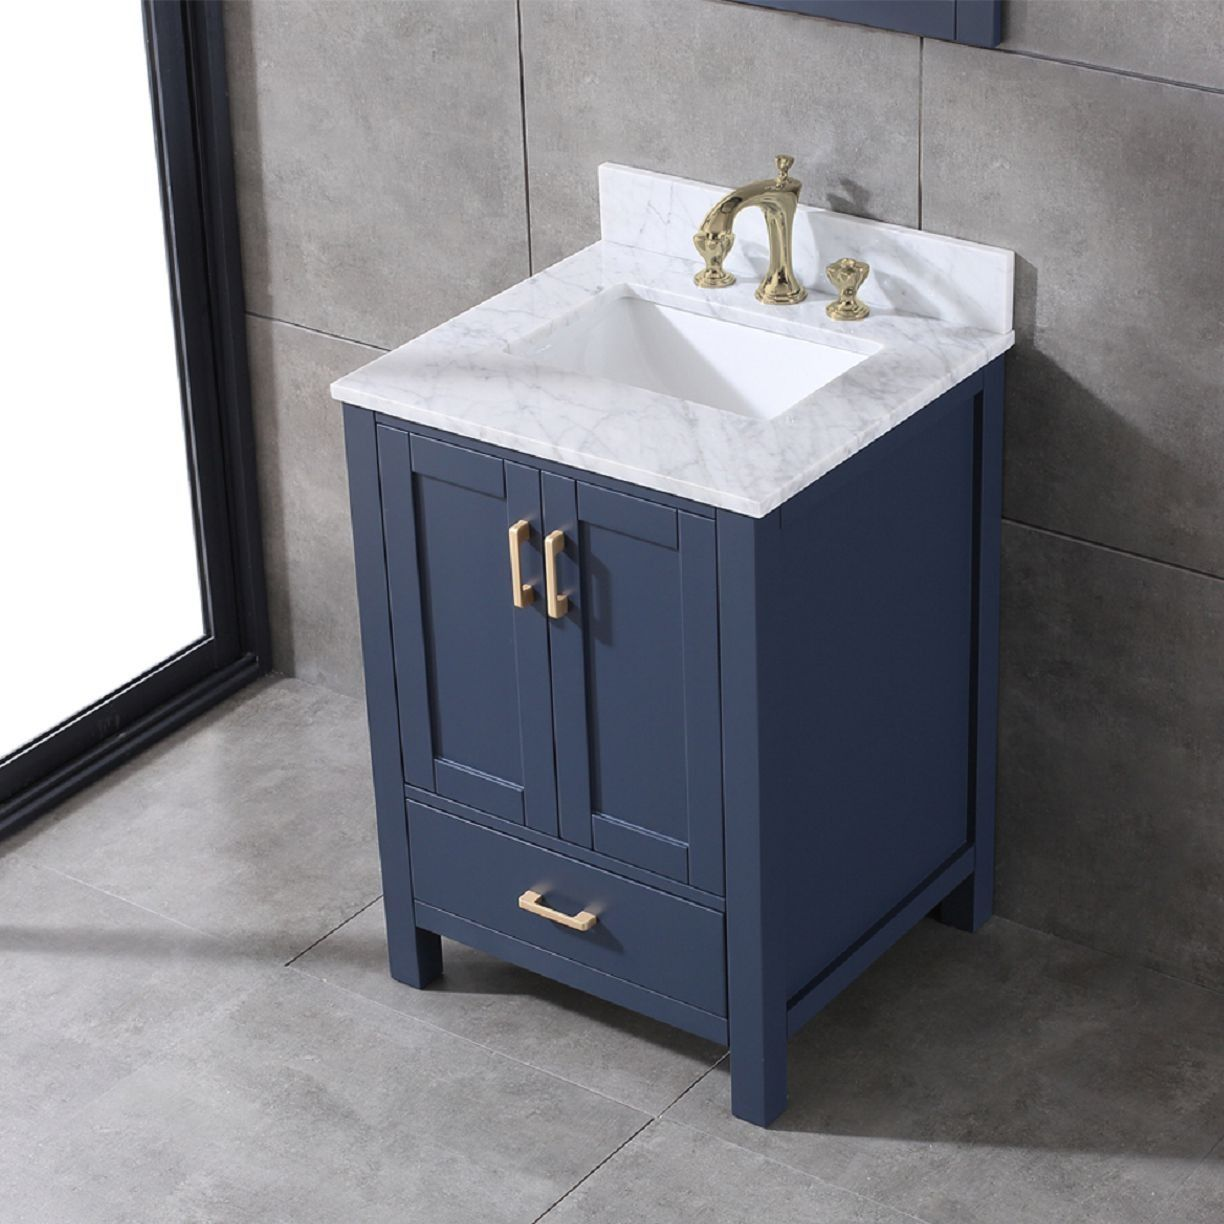 Willow Collection 24 In W X 22 In D Vanity In Navy Blue With 3 4